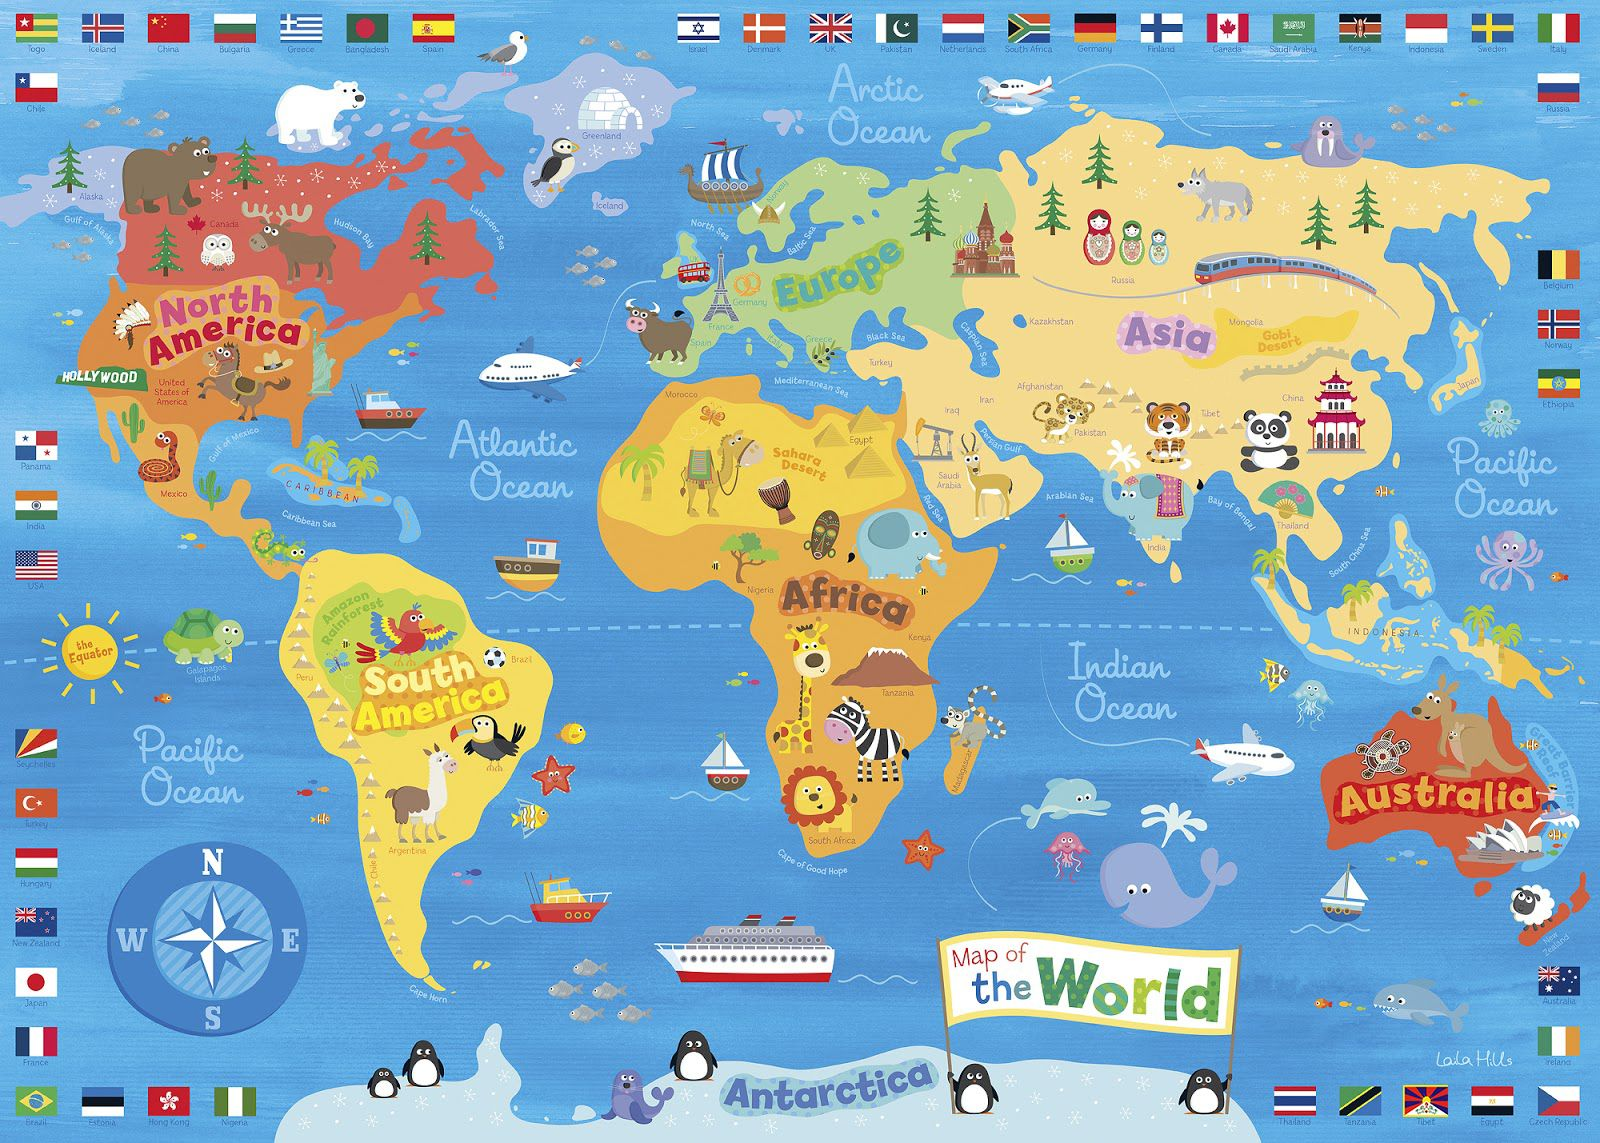 Illustrated Map of the World for Kids (Children's World Map) | 4K